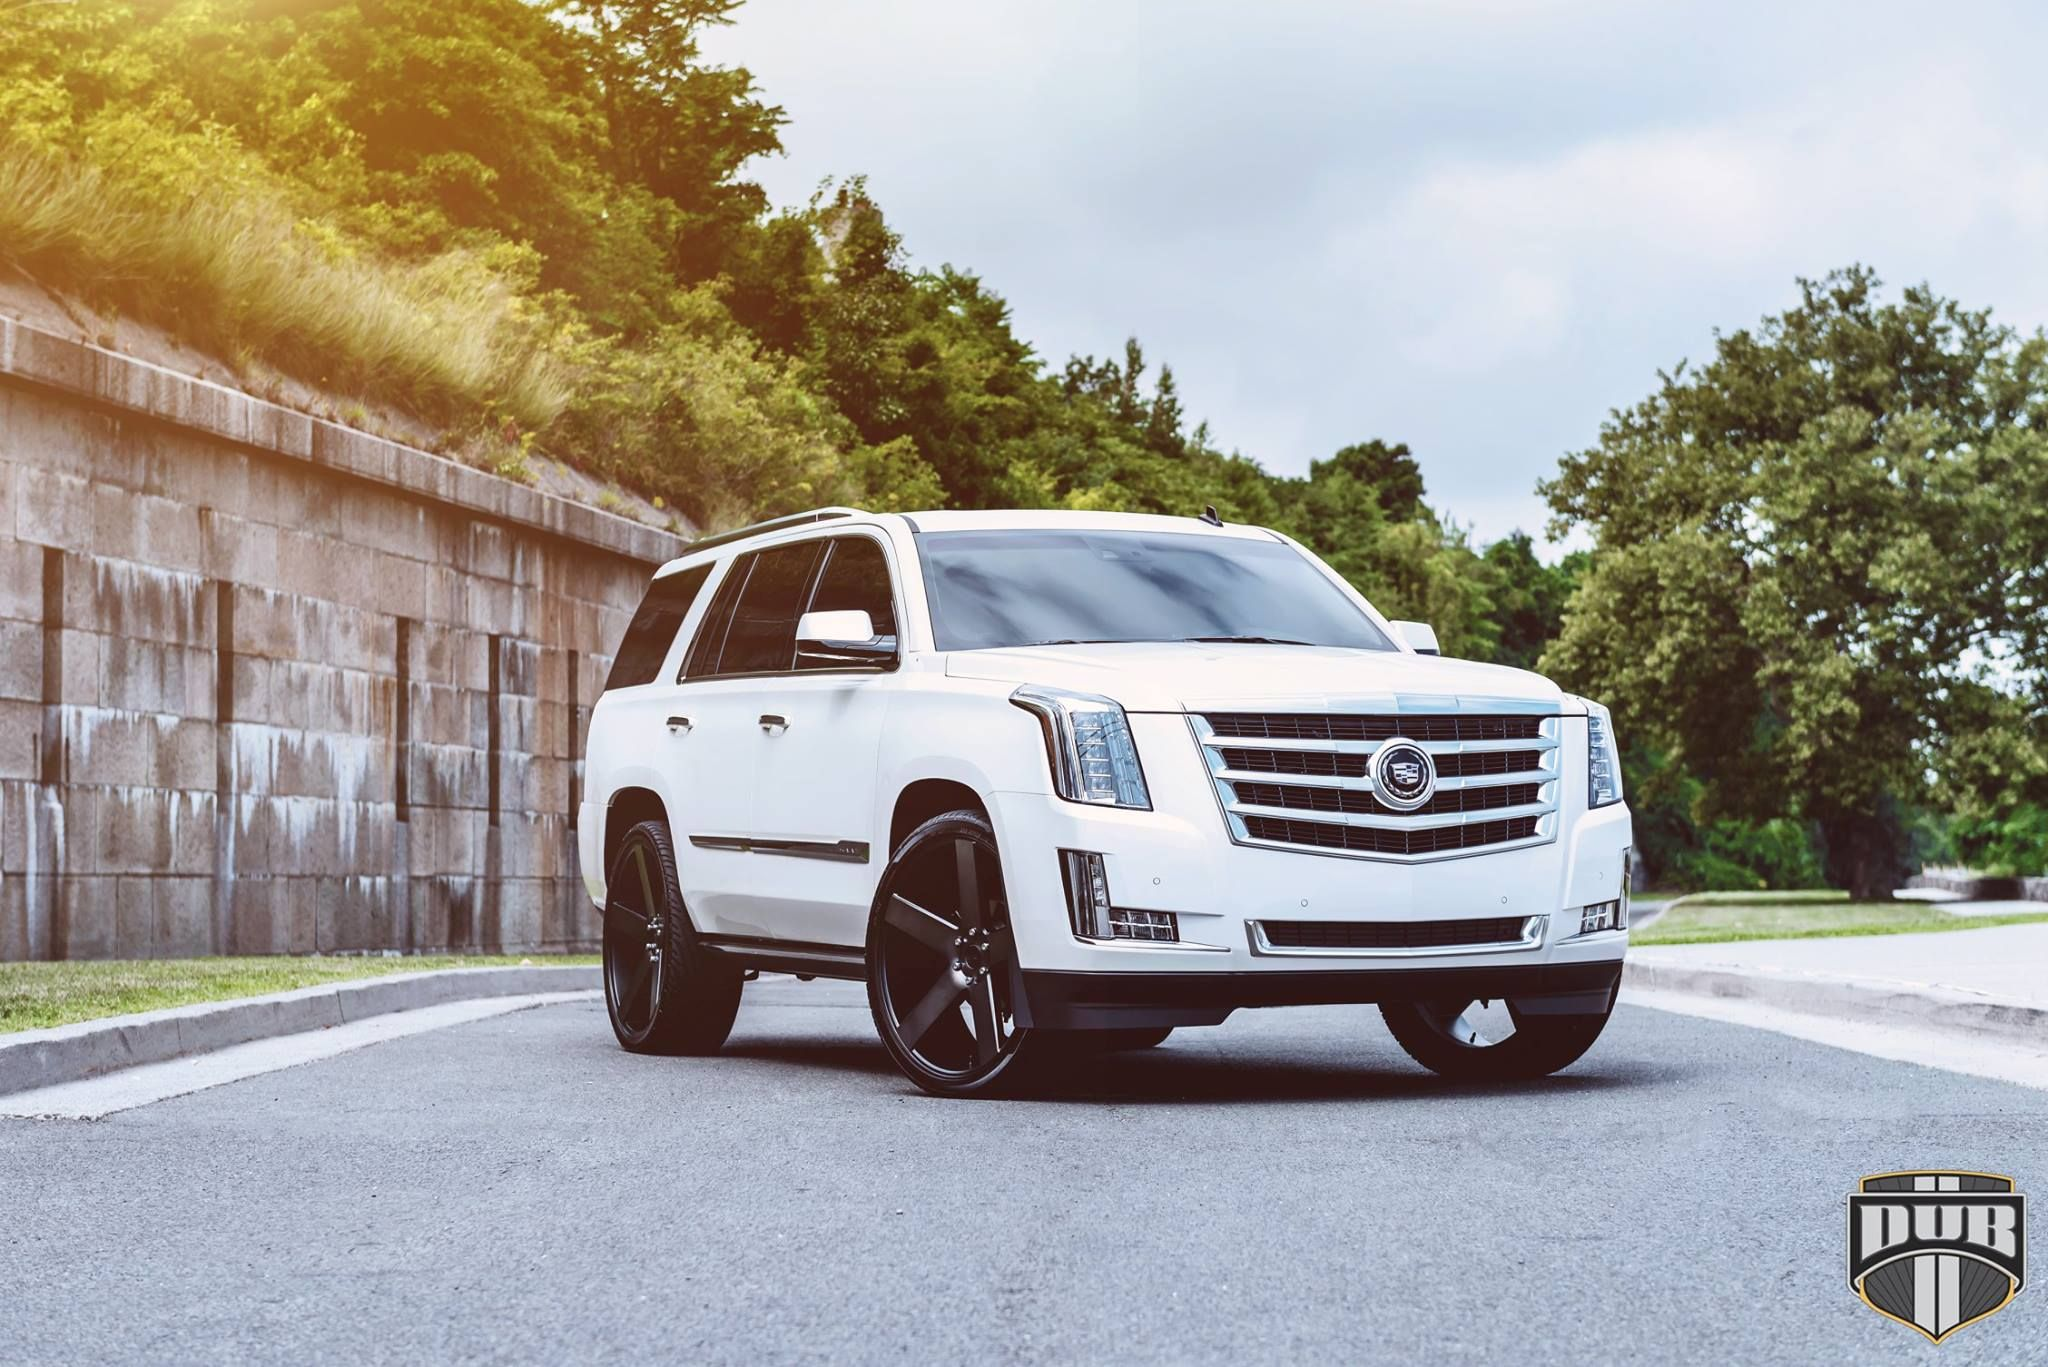 2015 Cadillac Escalade On 26-Inch DUB Baller Wheels... Luv the black